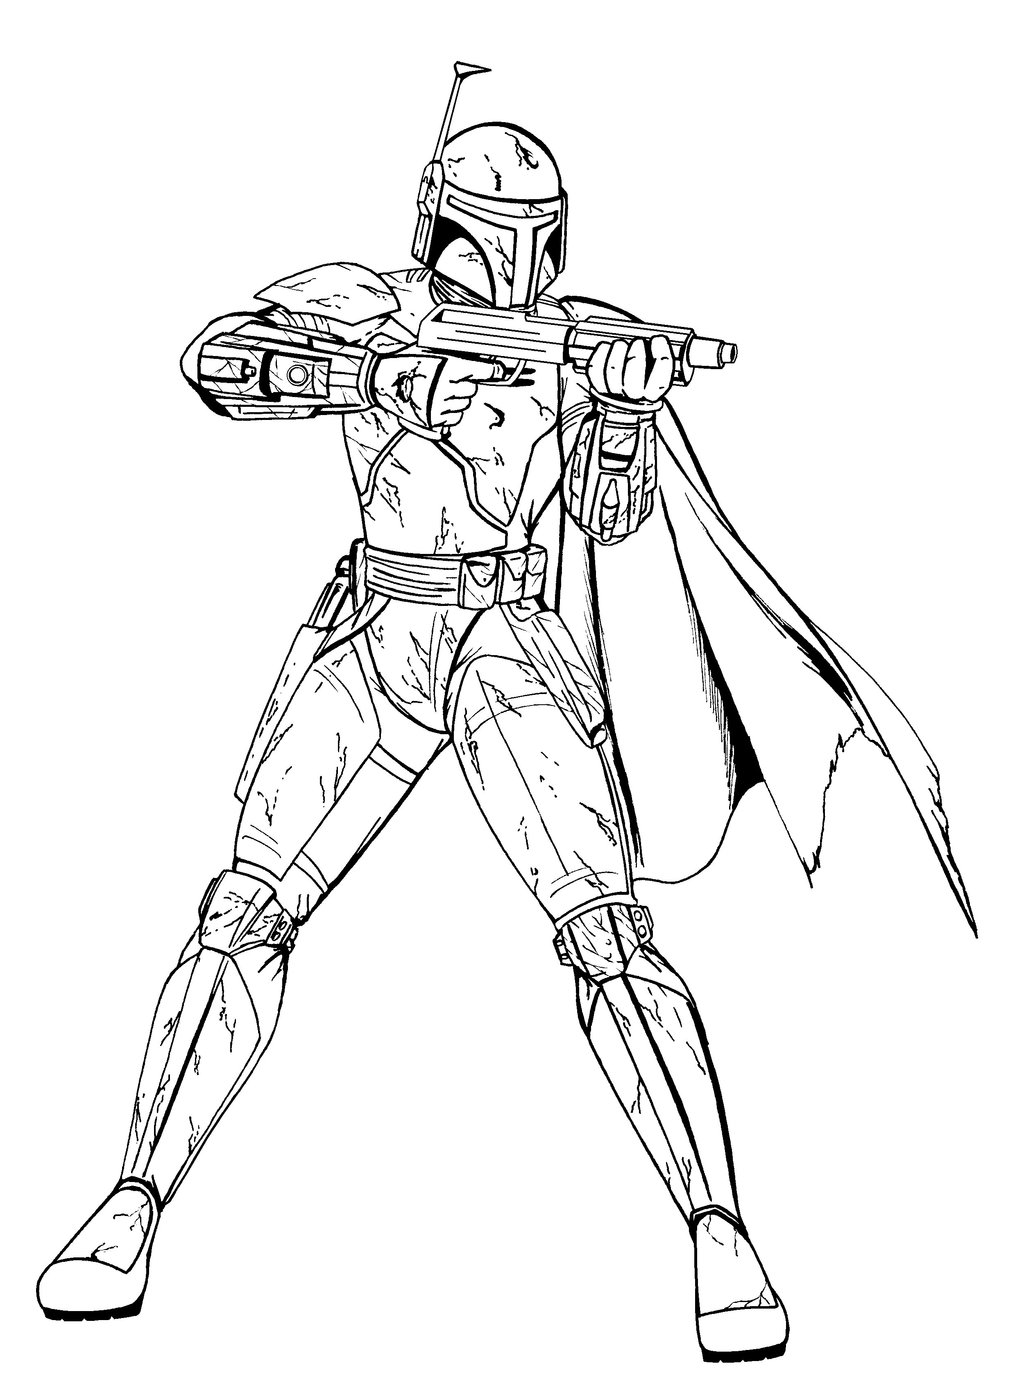 star wars color coloring pages star wars free printable coloring pages wars color star